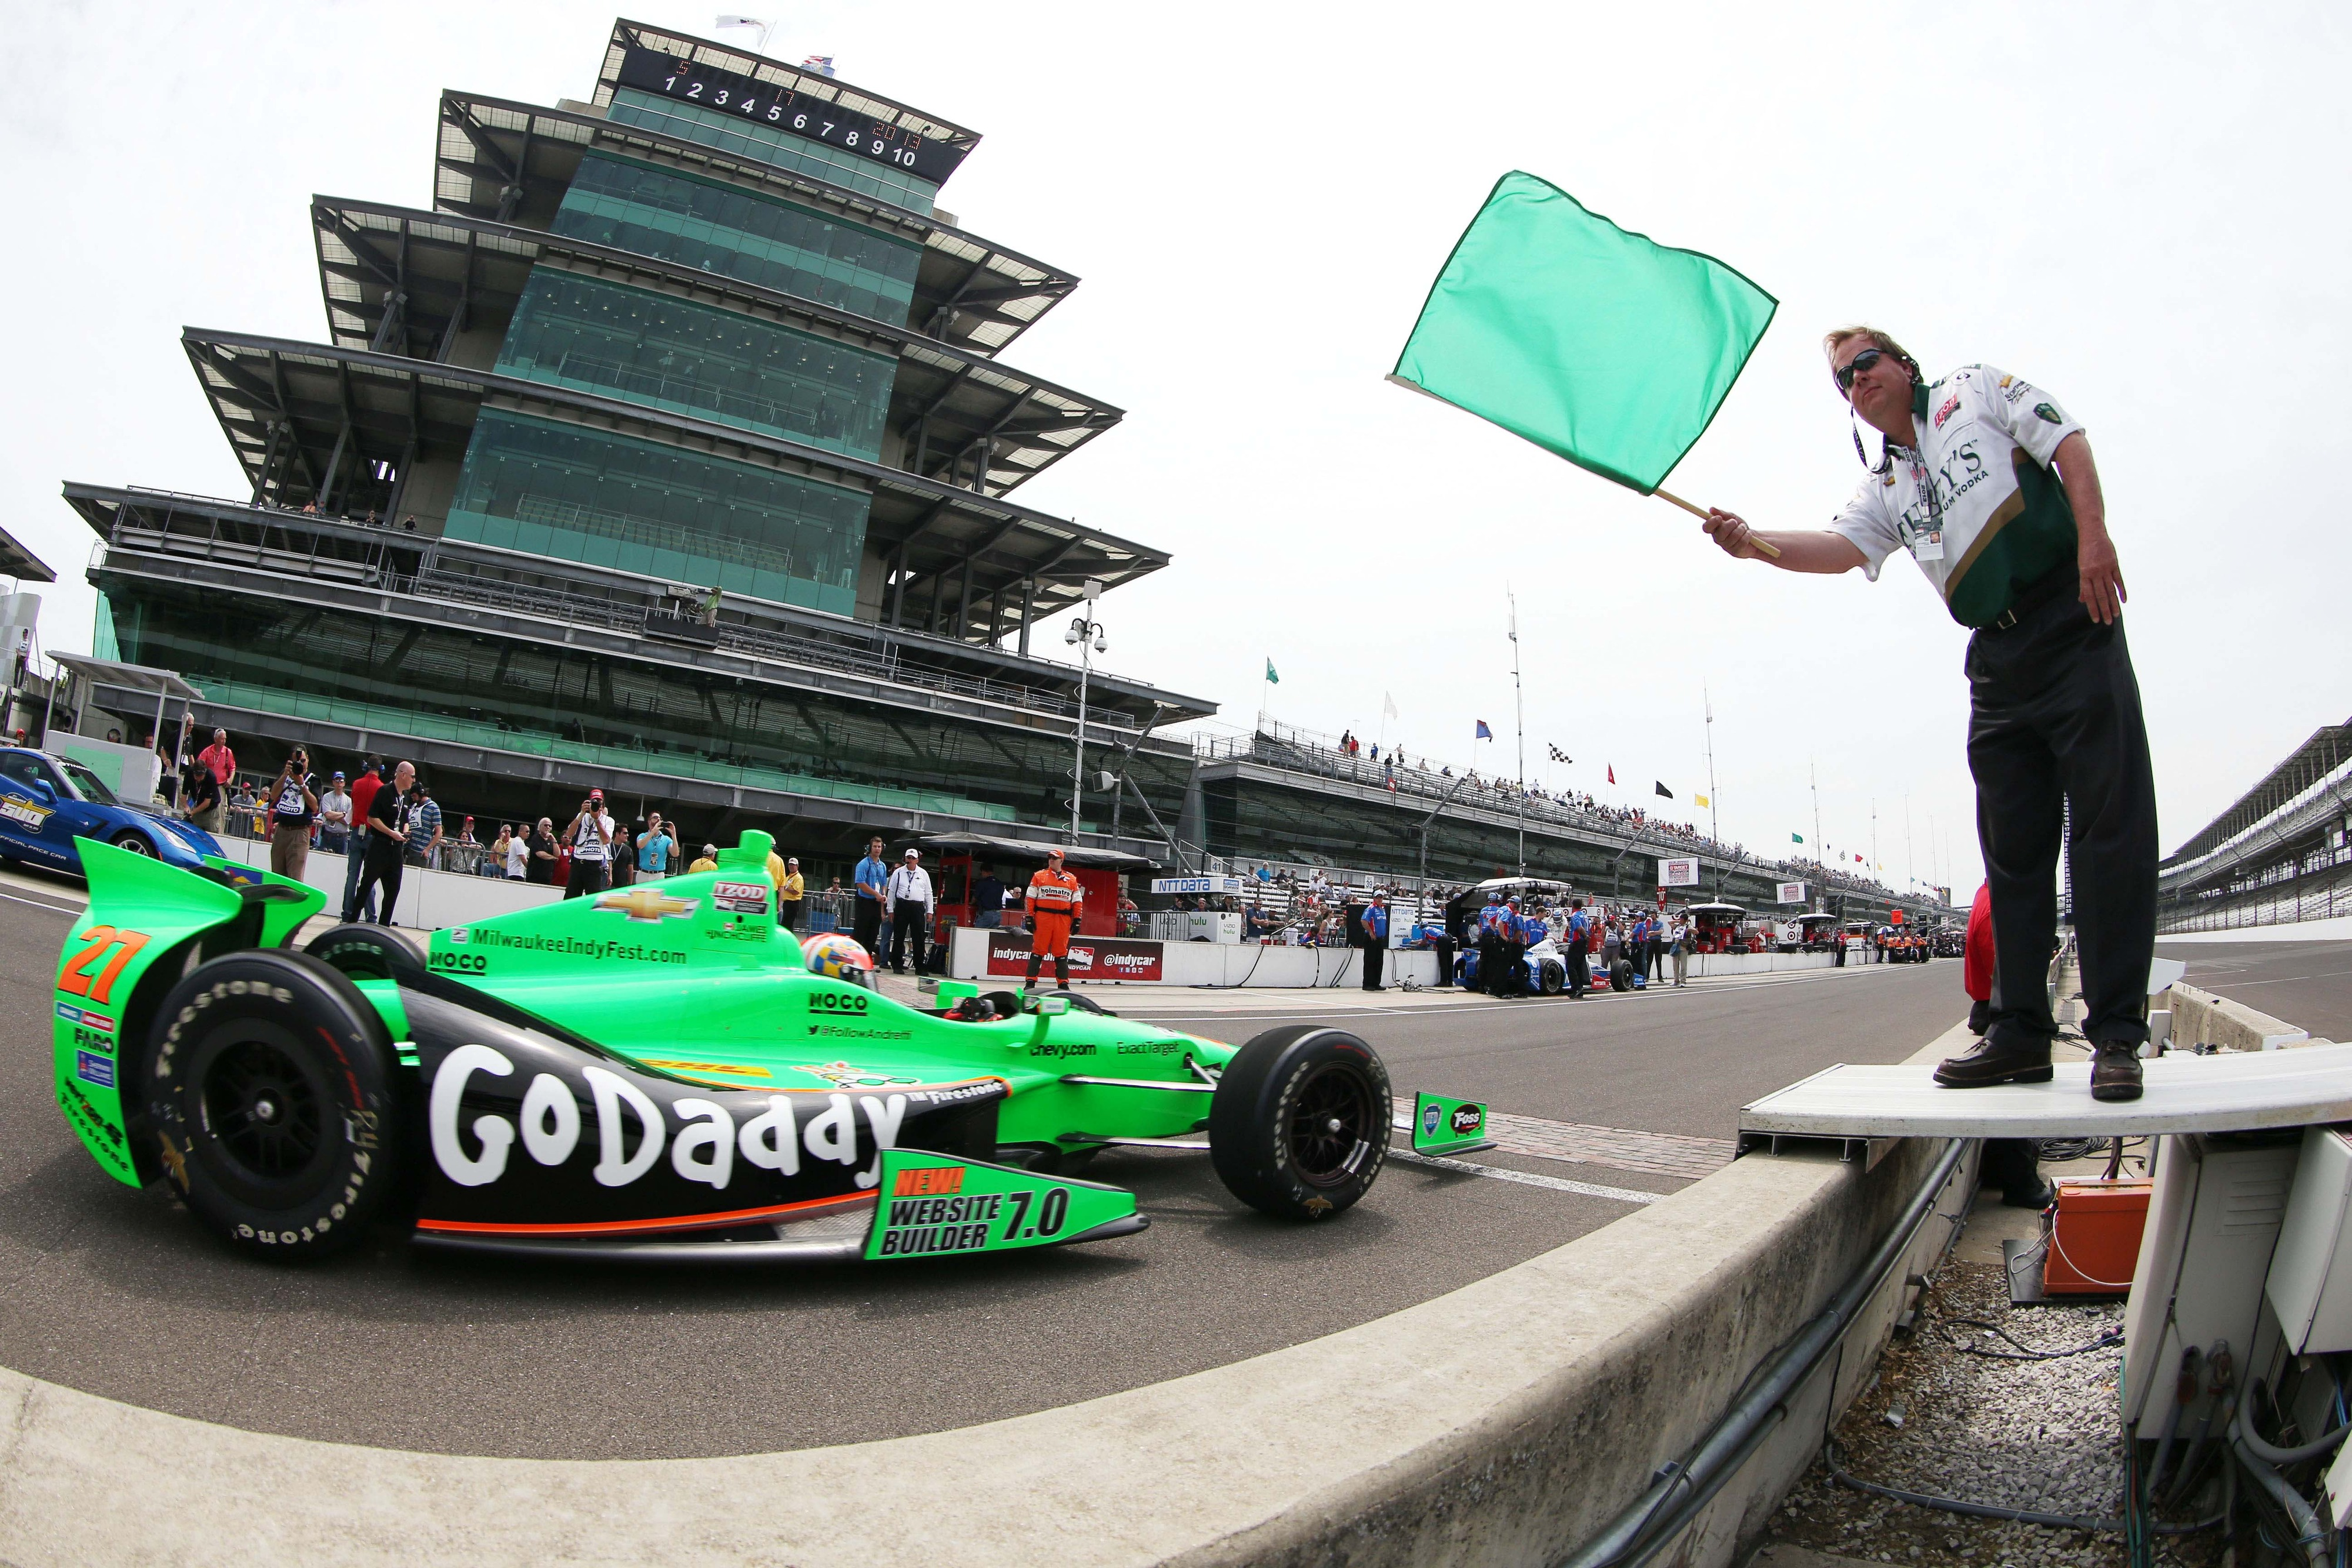 NASCAR/NBC deal will not negatively affect IndyCar coverage